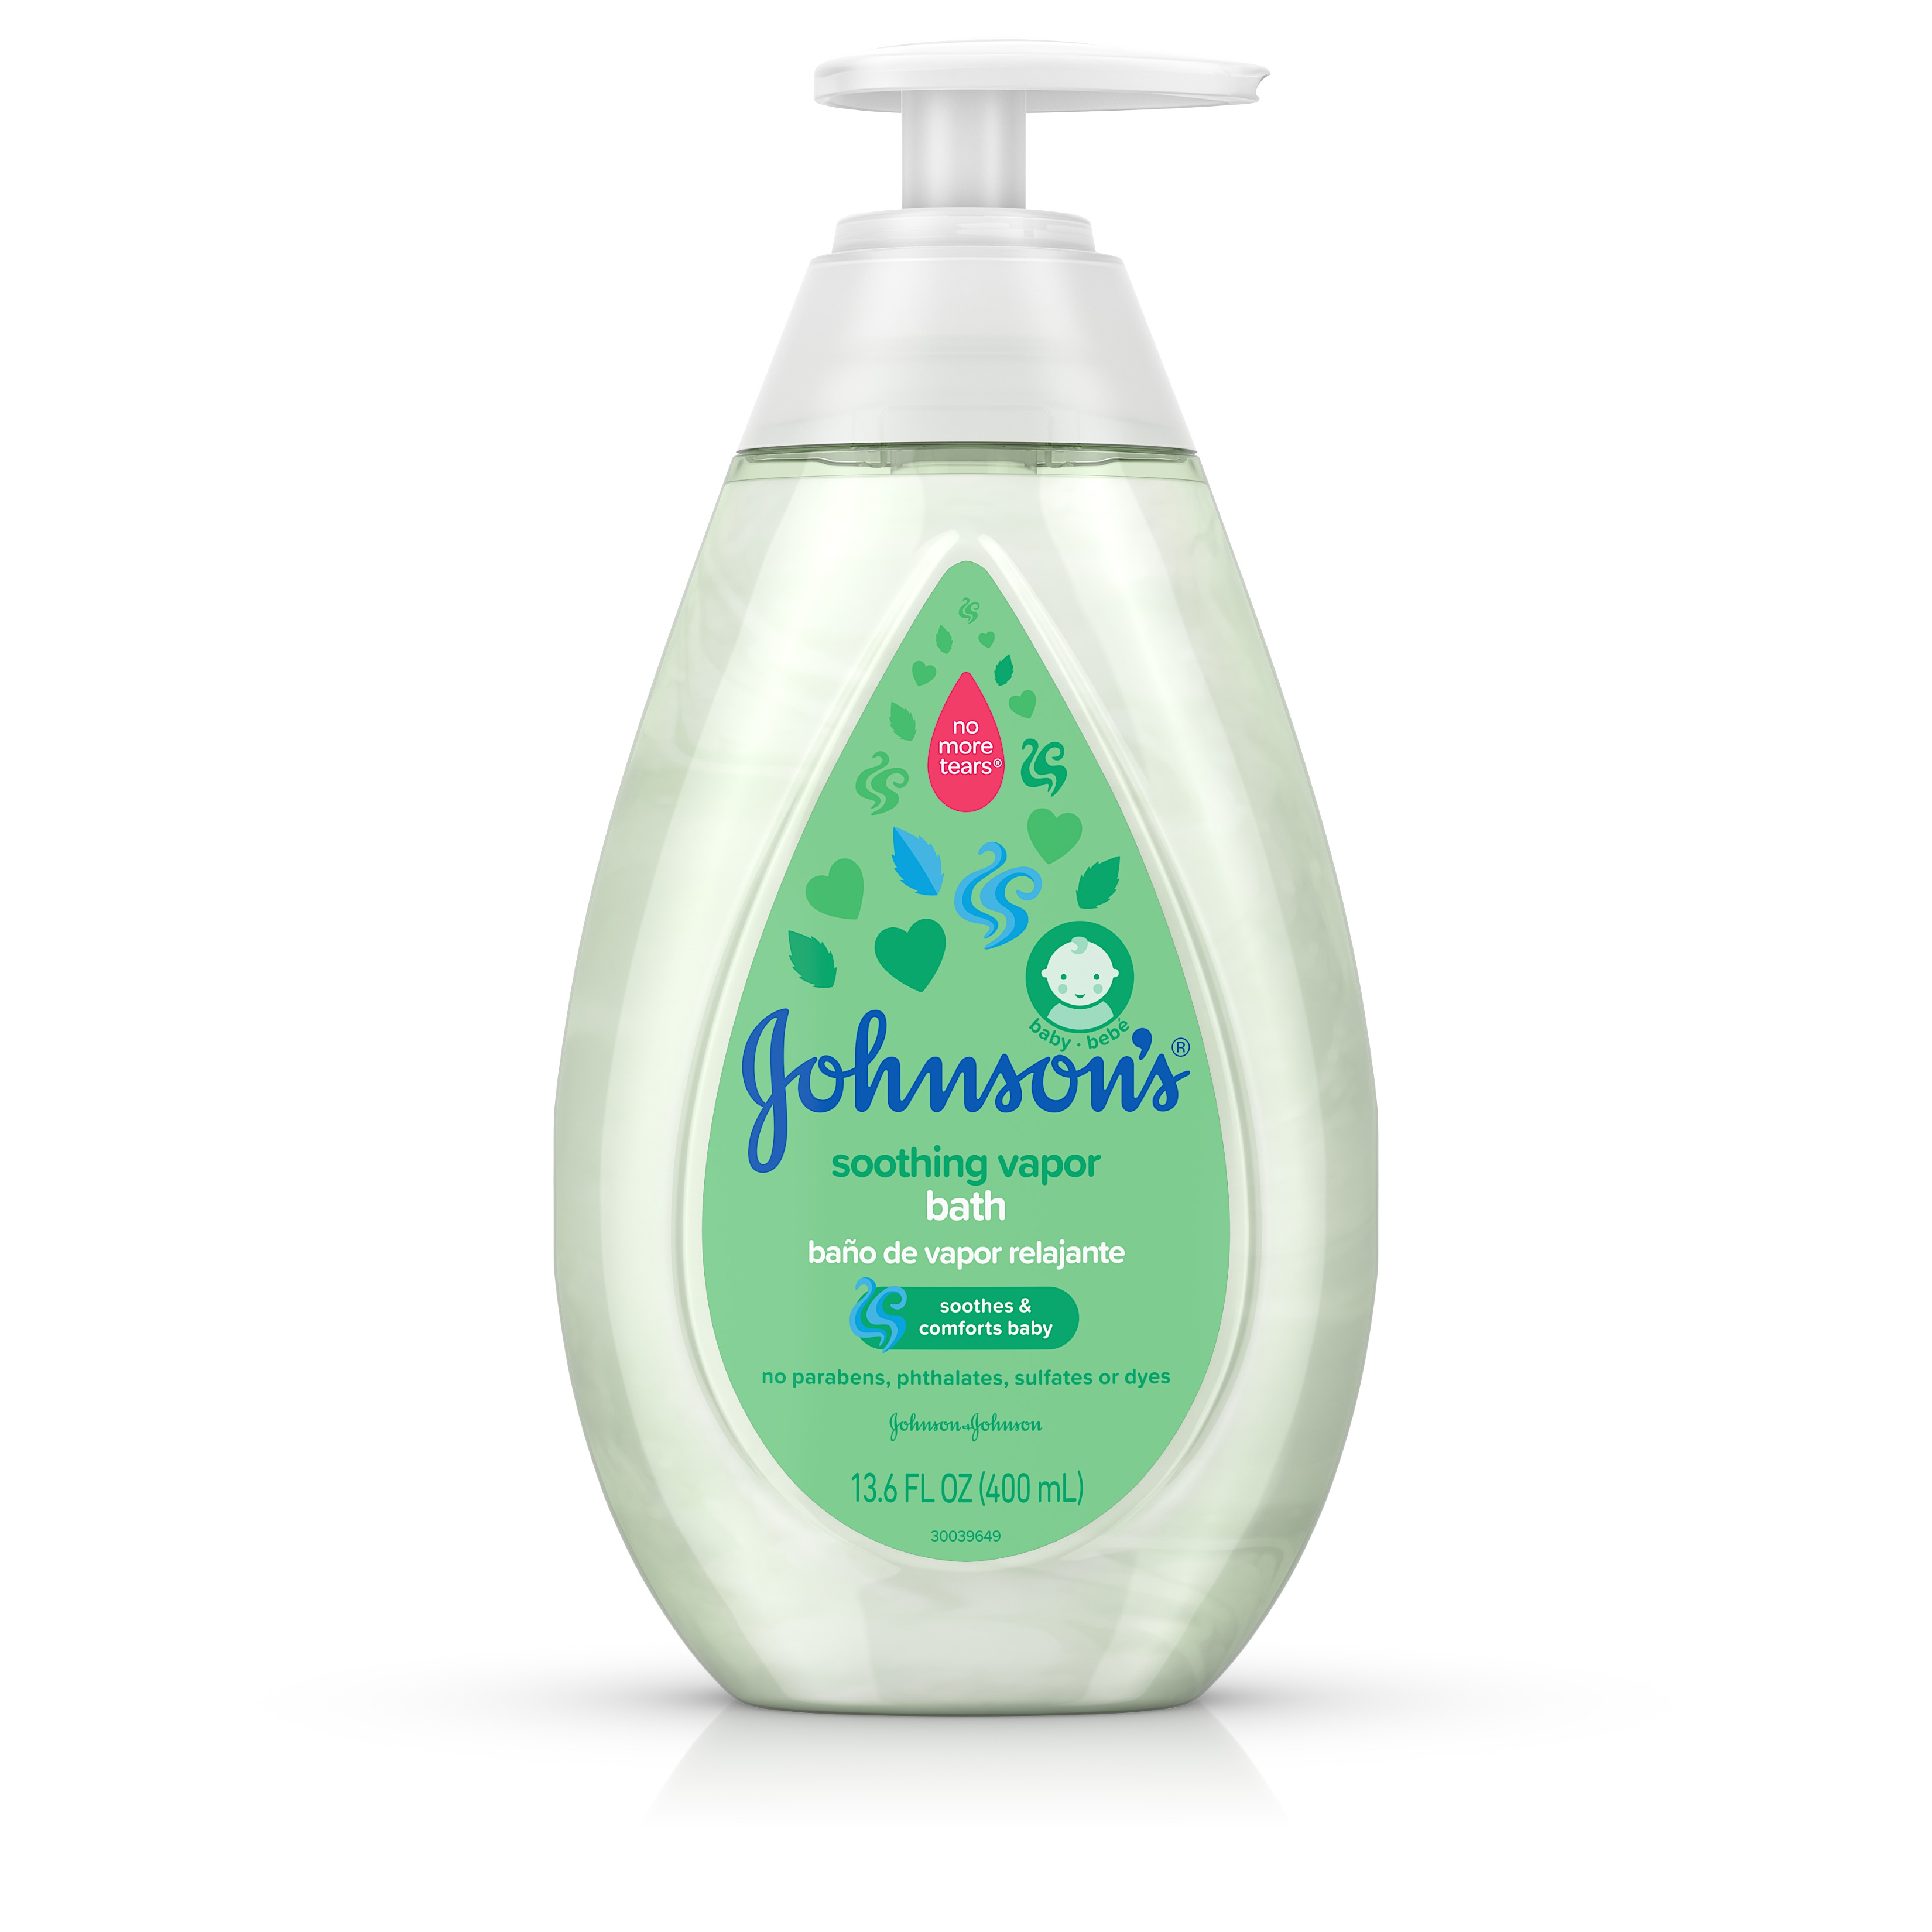 Johnsons Baby Soothing Vapor Bath to Relax Babies, 13.6 fl. oz by Johnson & Johnson